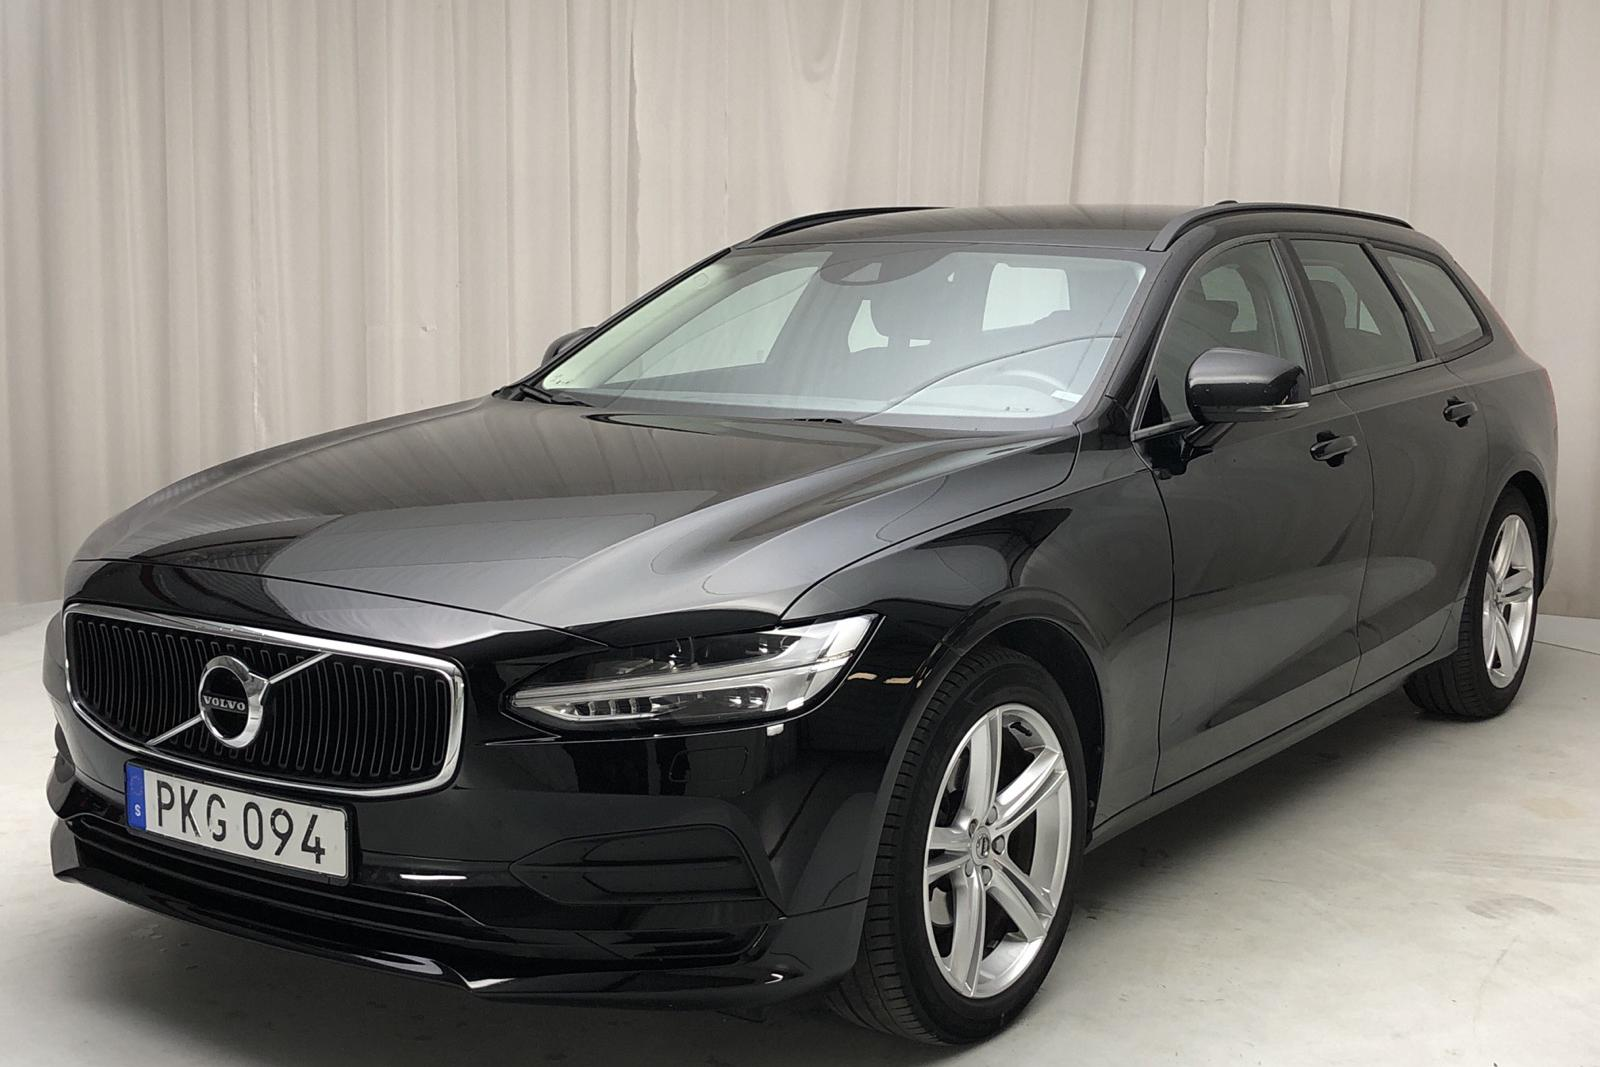 Volvo V90 D3 (150hk) - 84 868 km - Manual - black - 2018